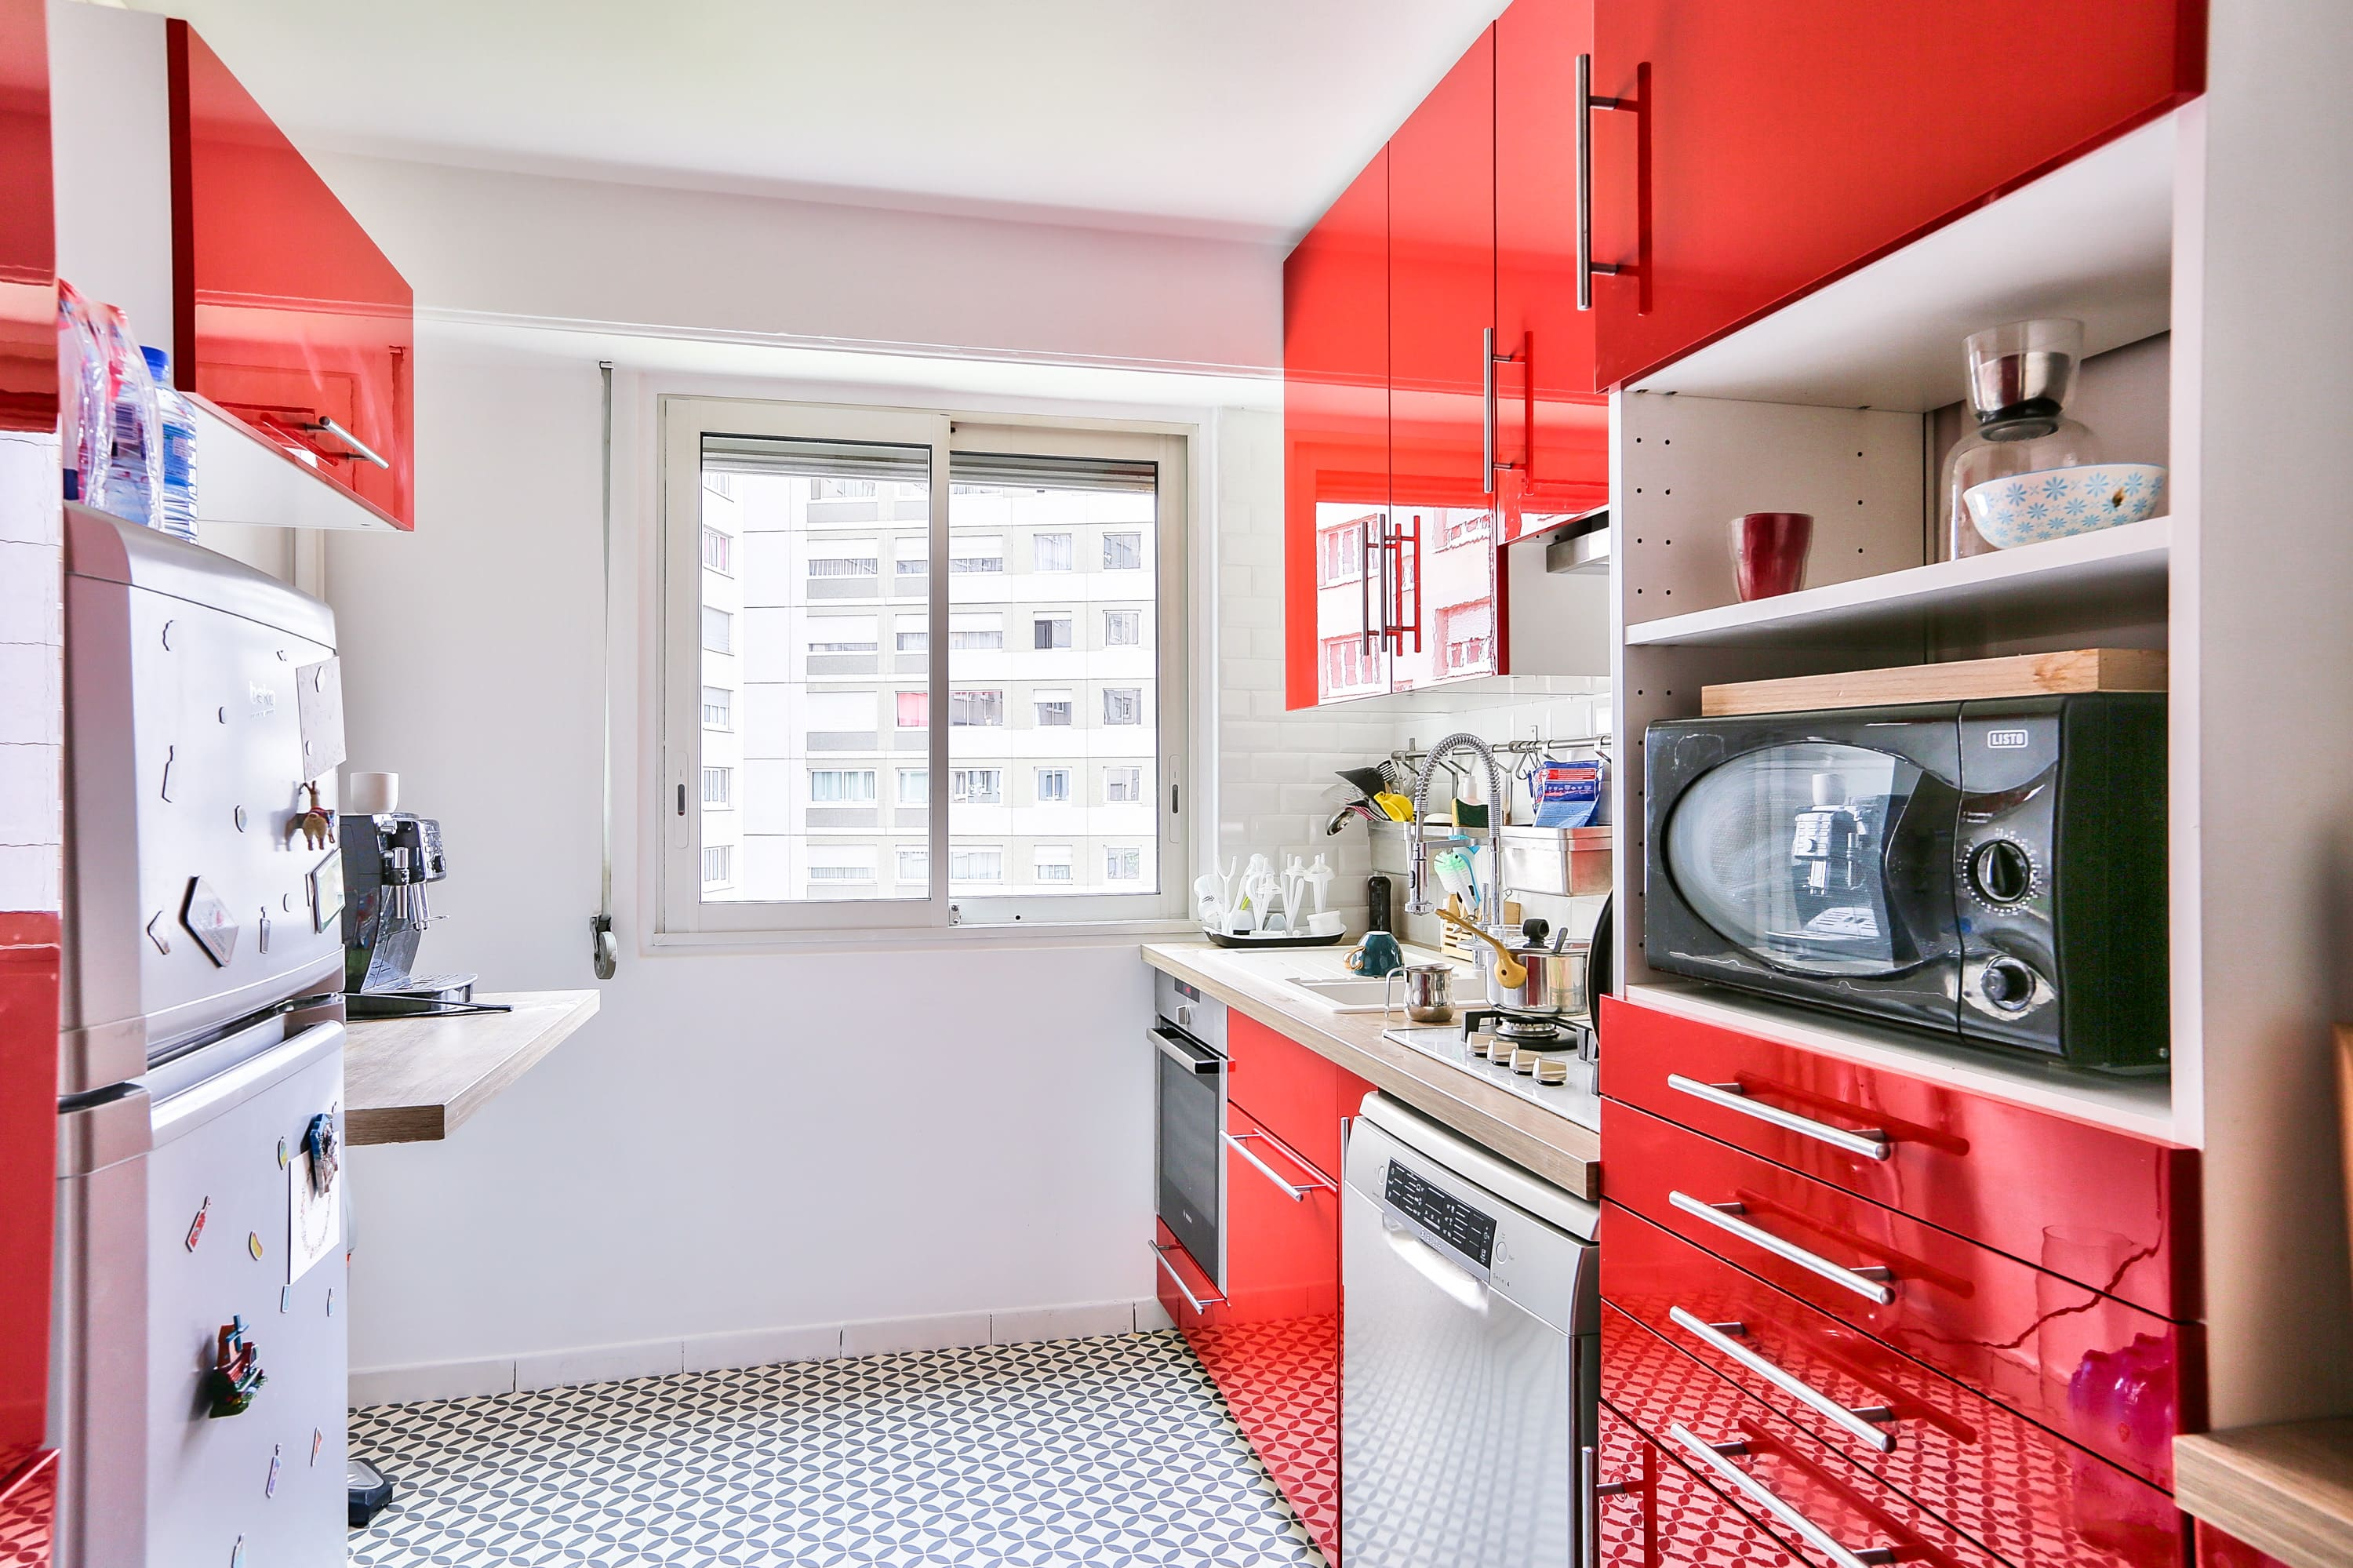 cuisine-appartement-vente-commission-fixe